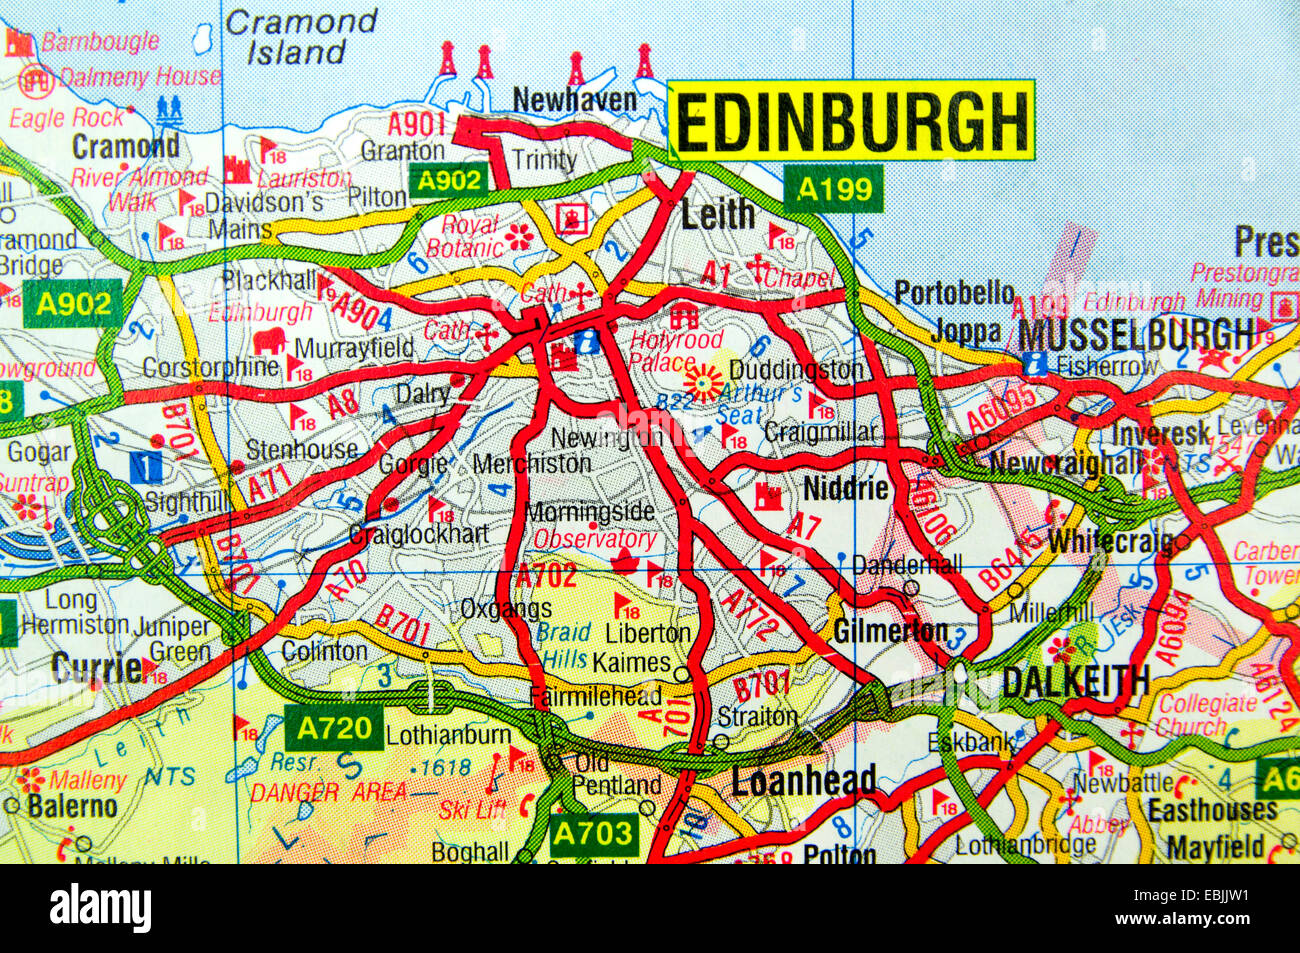 Map Of Edinburgh Scotland Road Map of Edinburgh, Scotland Stock Photo: 76012637   Alamy Map Of Edinburgh Scotland